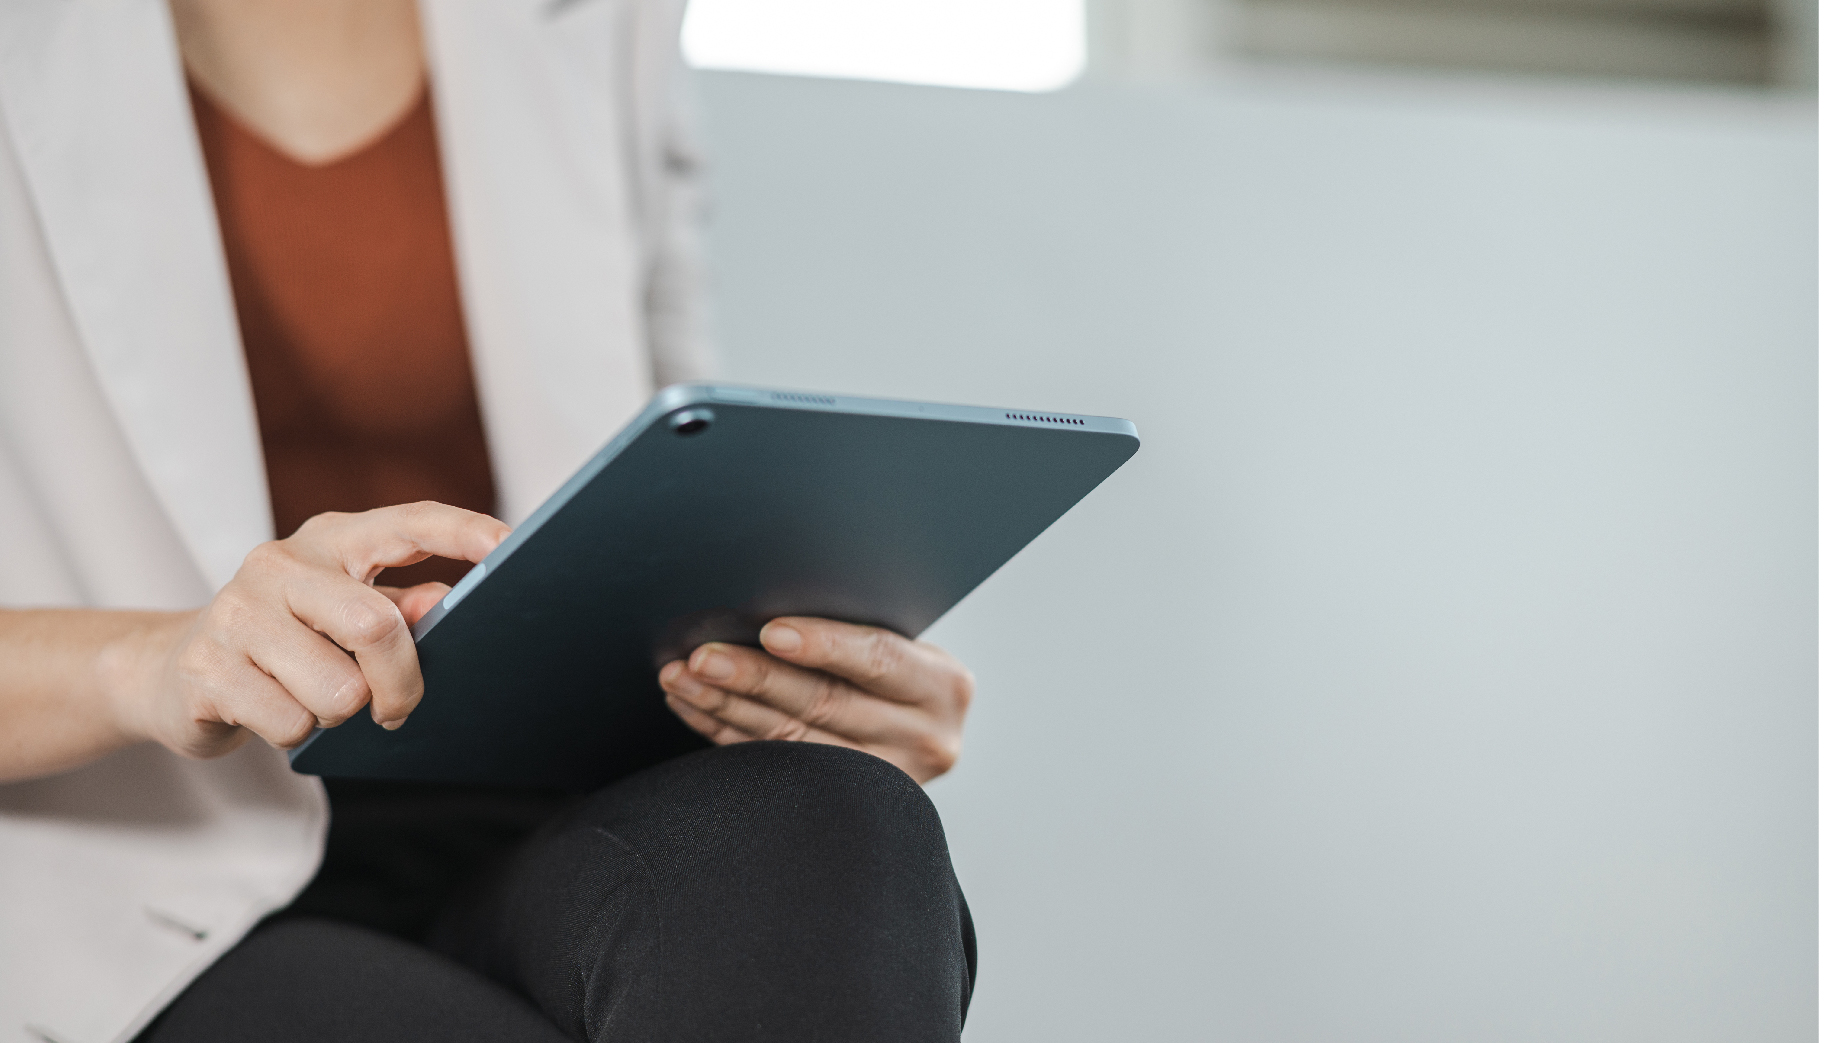 A woman in a white blazer using a tablet computer.